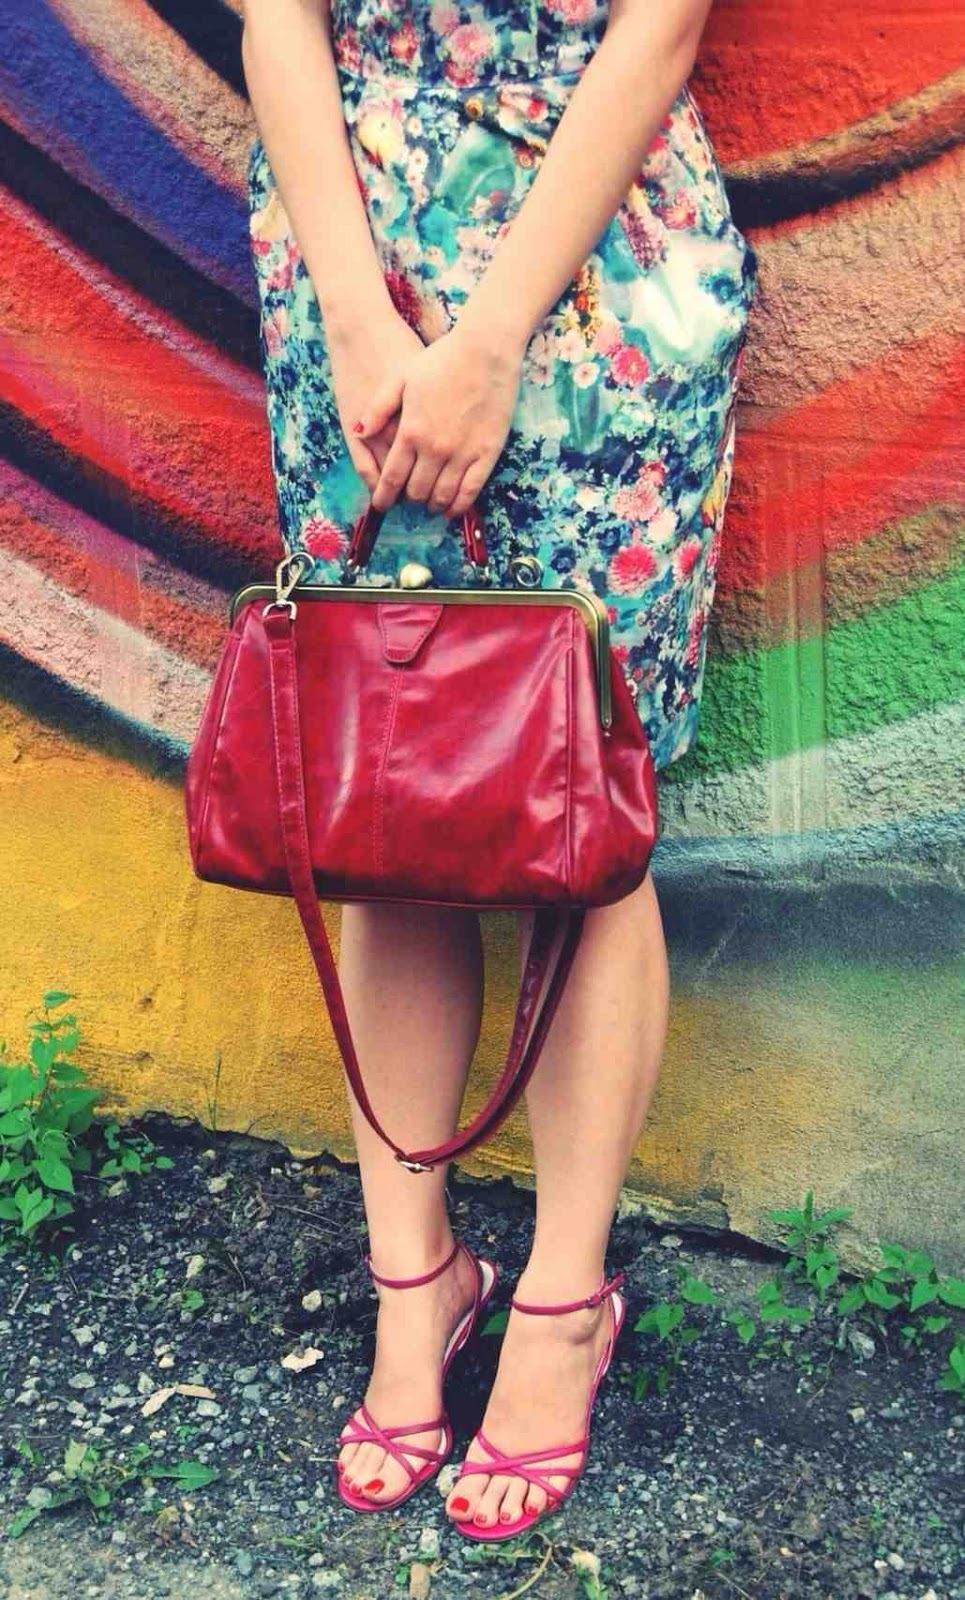 floral tulip dress retro handbag pink sandals